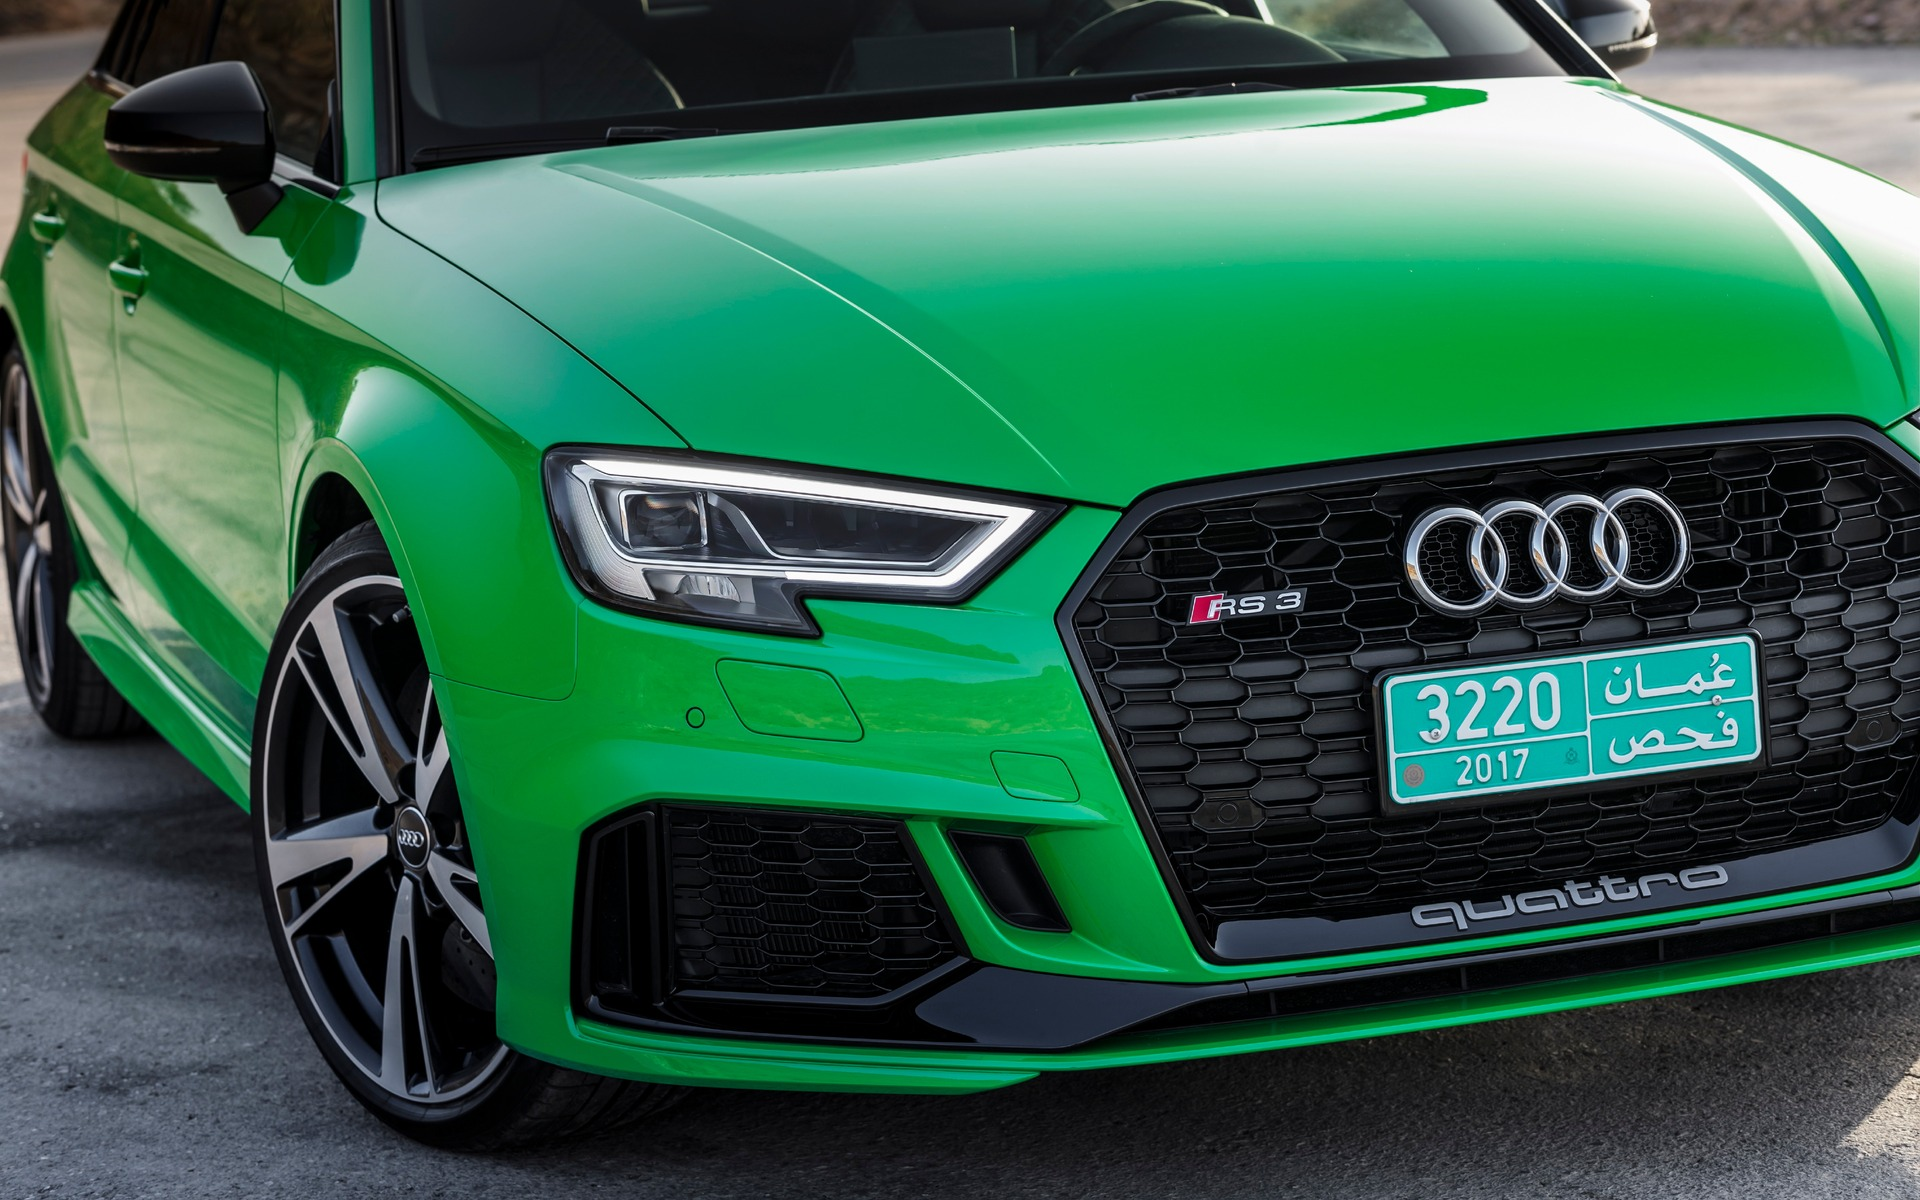 2018 Audi RS 3: The Ultimate Sleeper - 13/23